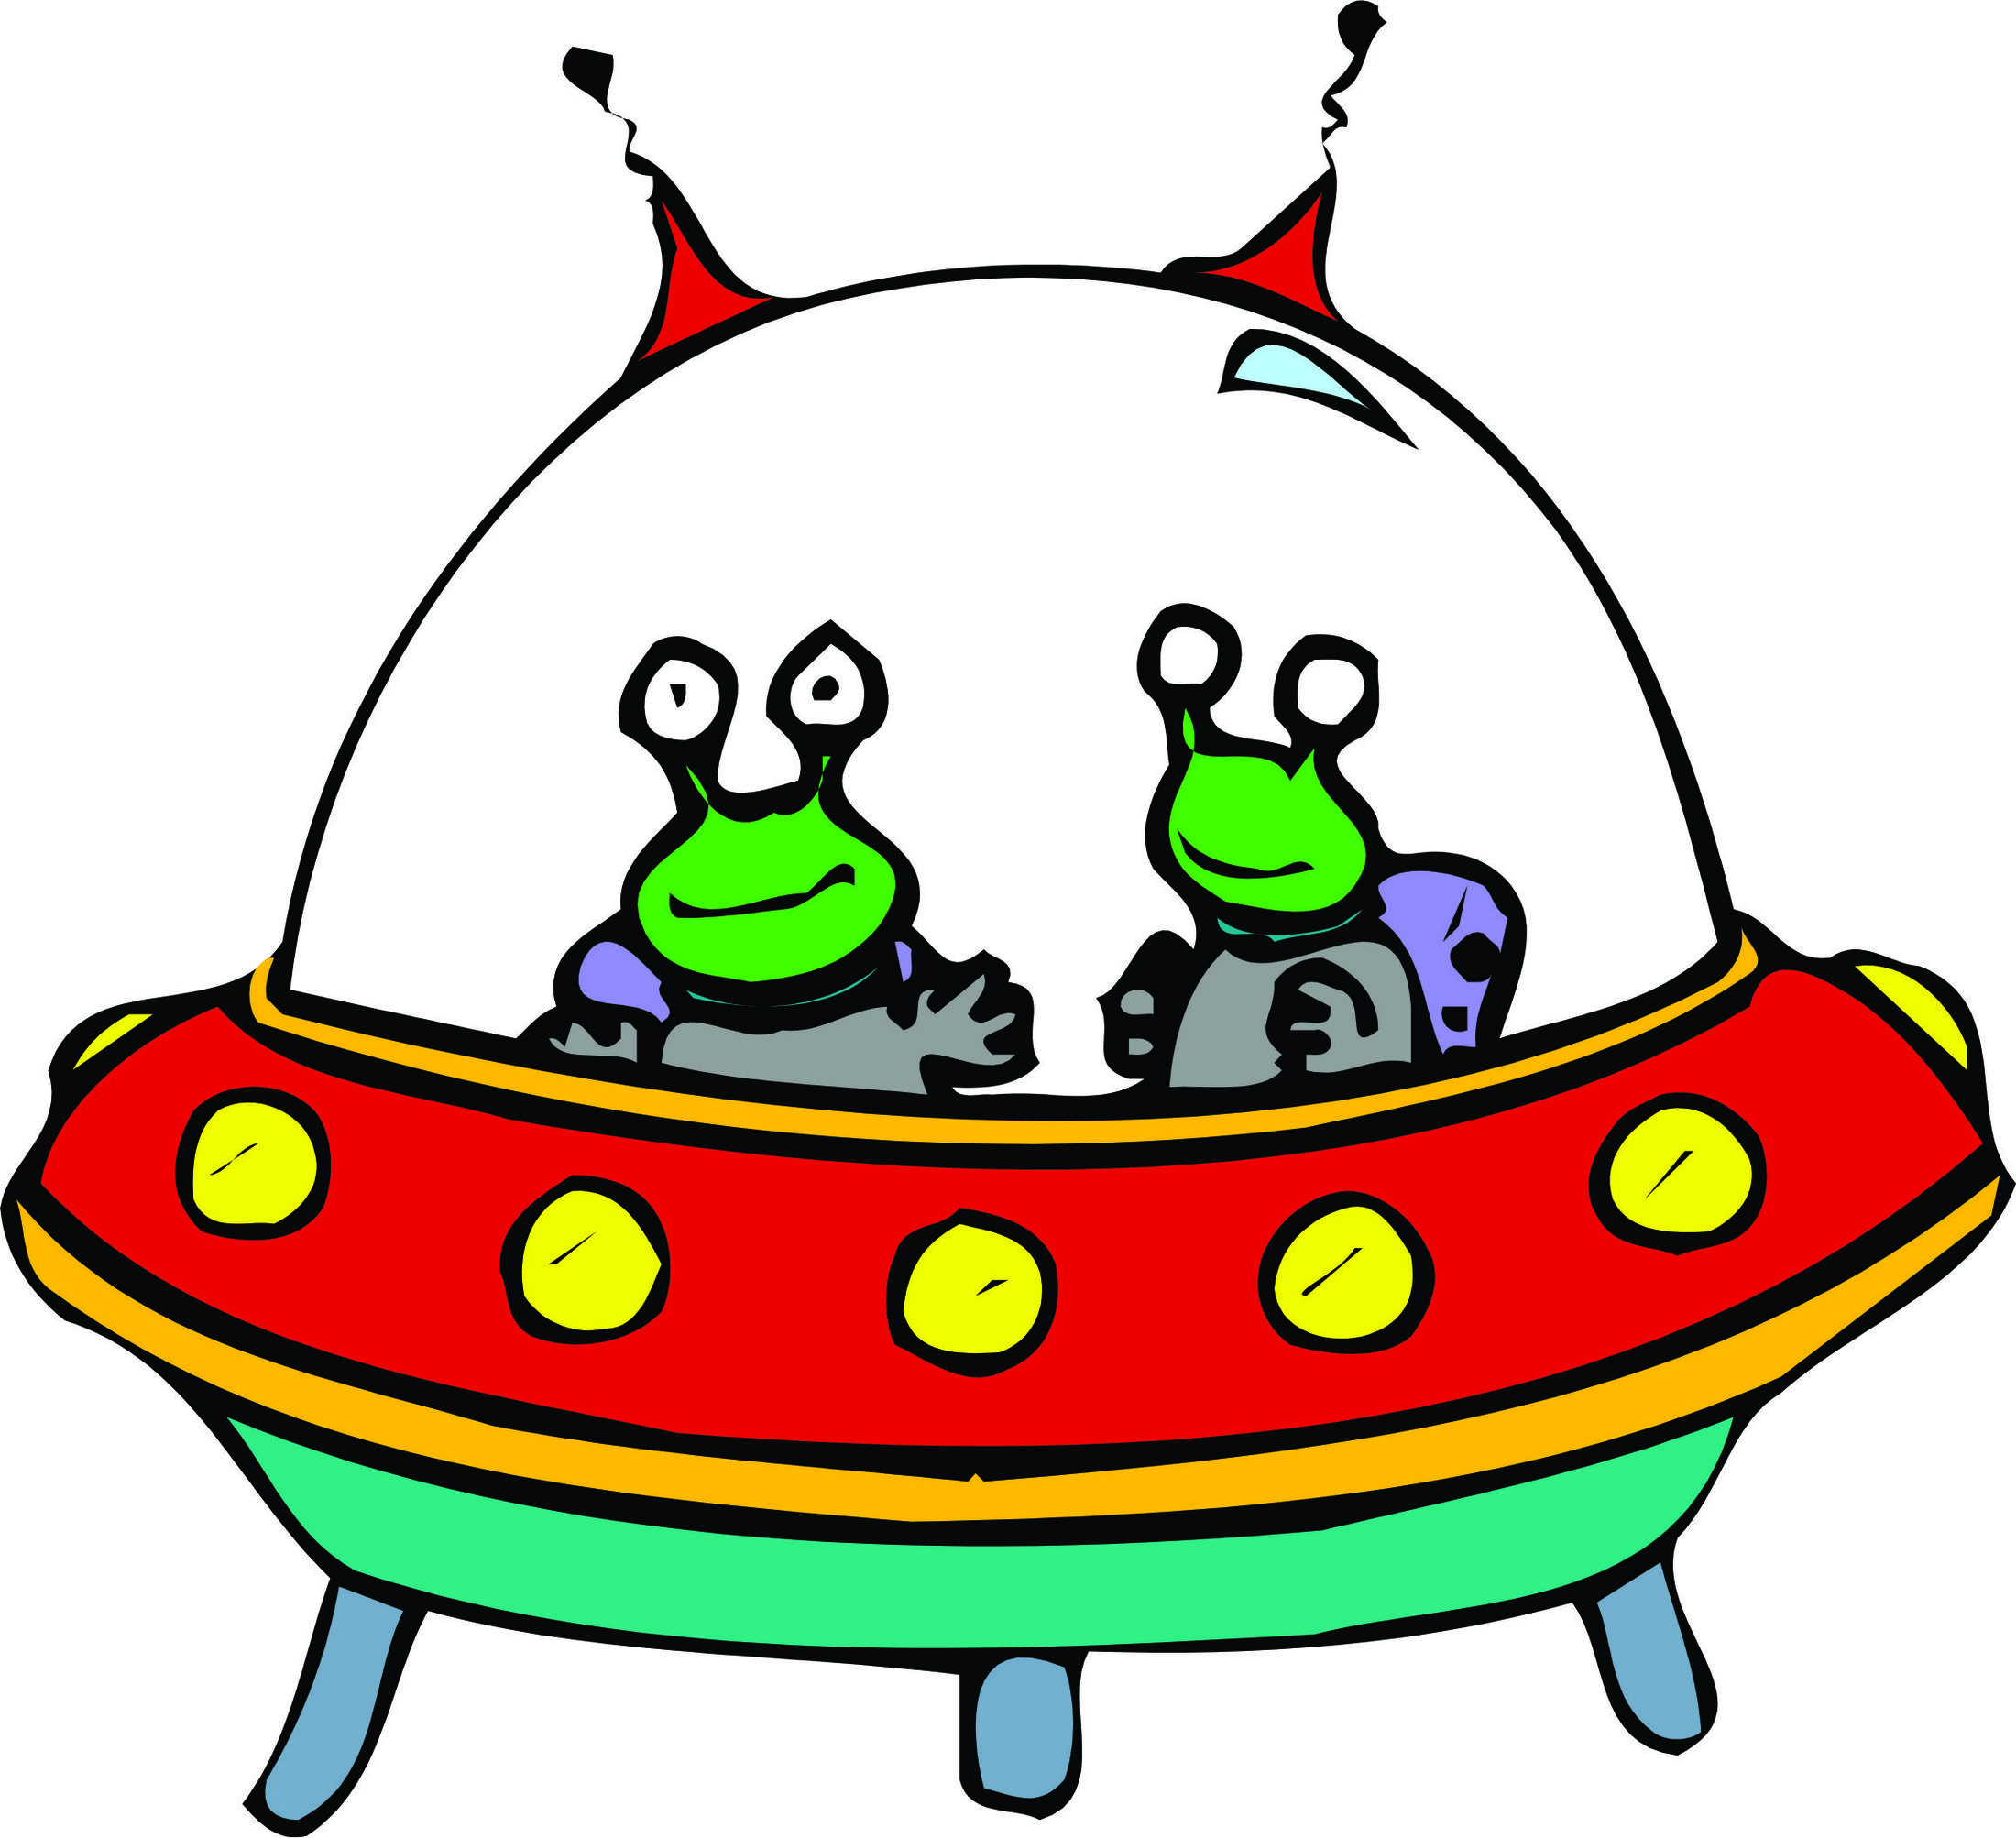 Spaceship clipart two. Spacecraft at getdrawings com